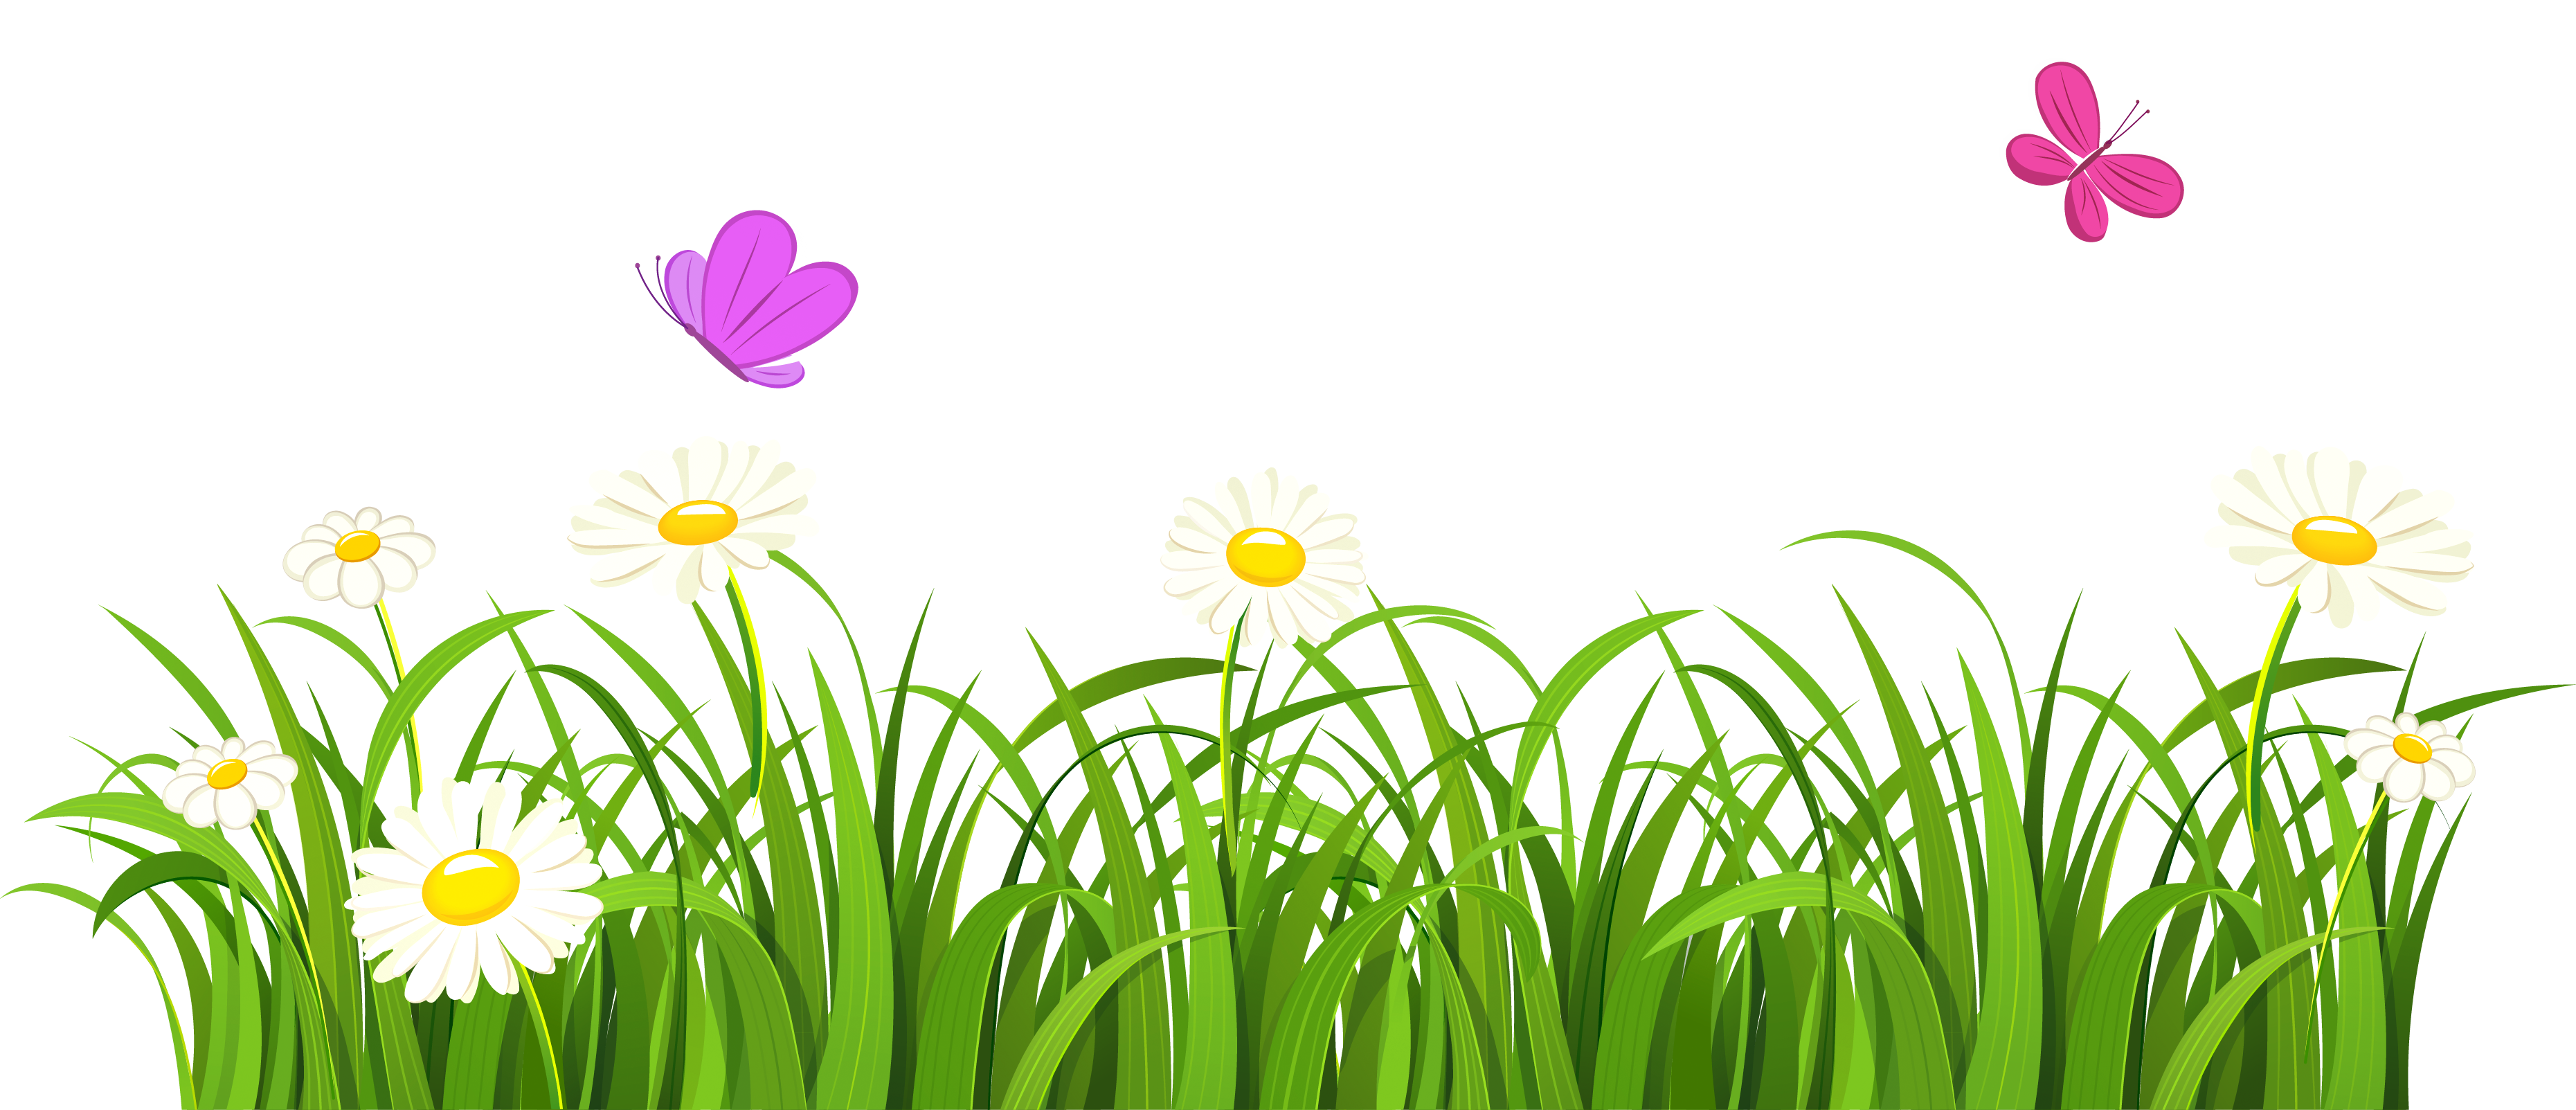 Green Grass Clipart Free Stock Photo Public Domain Pictures Image